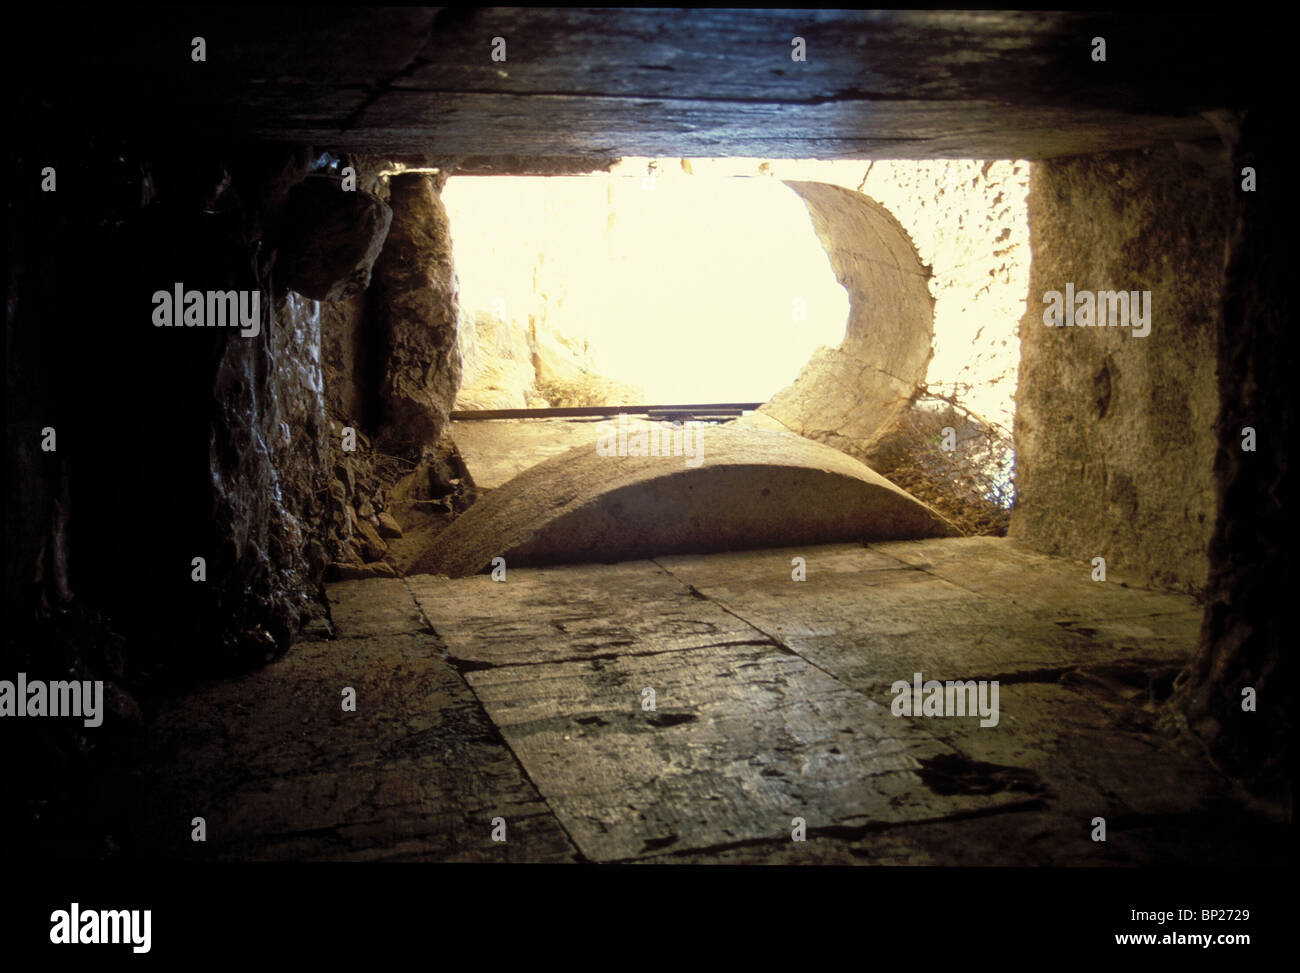 1393. JERUSALEM, A BURIAL CAVE WITH A 'ROLLING STONE' GATE, TRADITIONALY KNOWN AS AS 'HEROD'S TOMB' - Stock Image